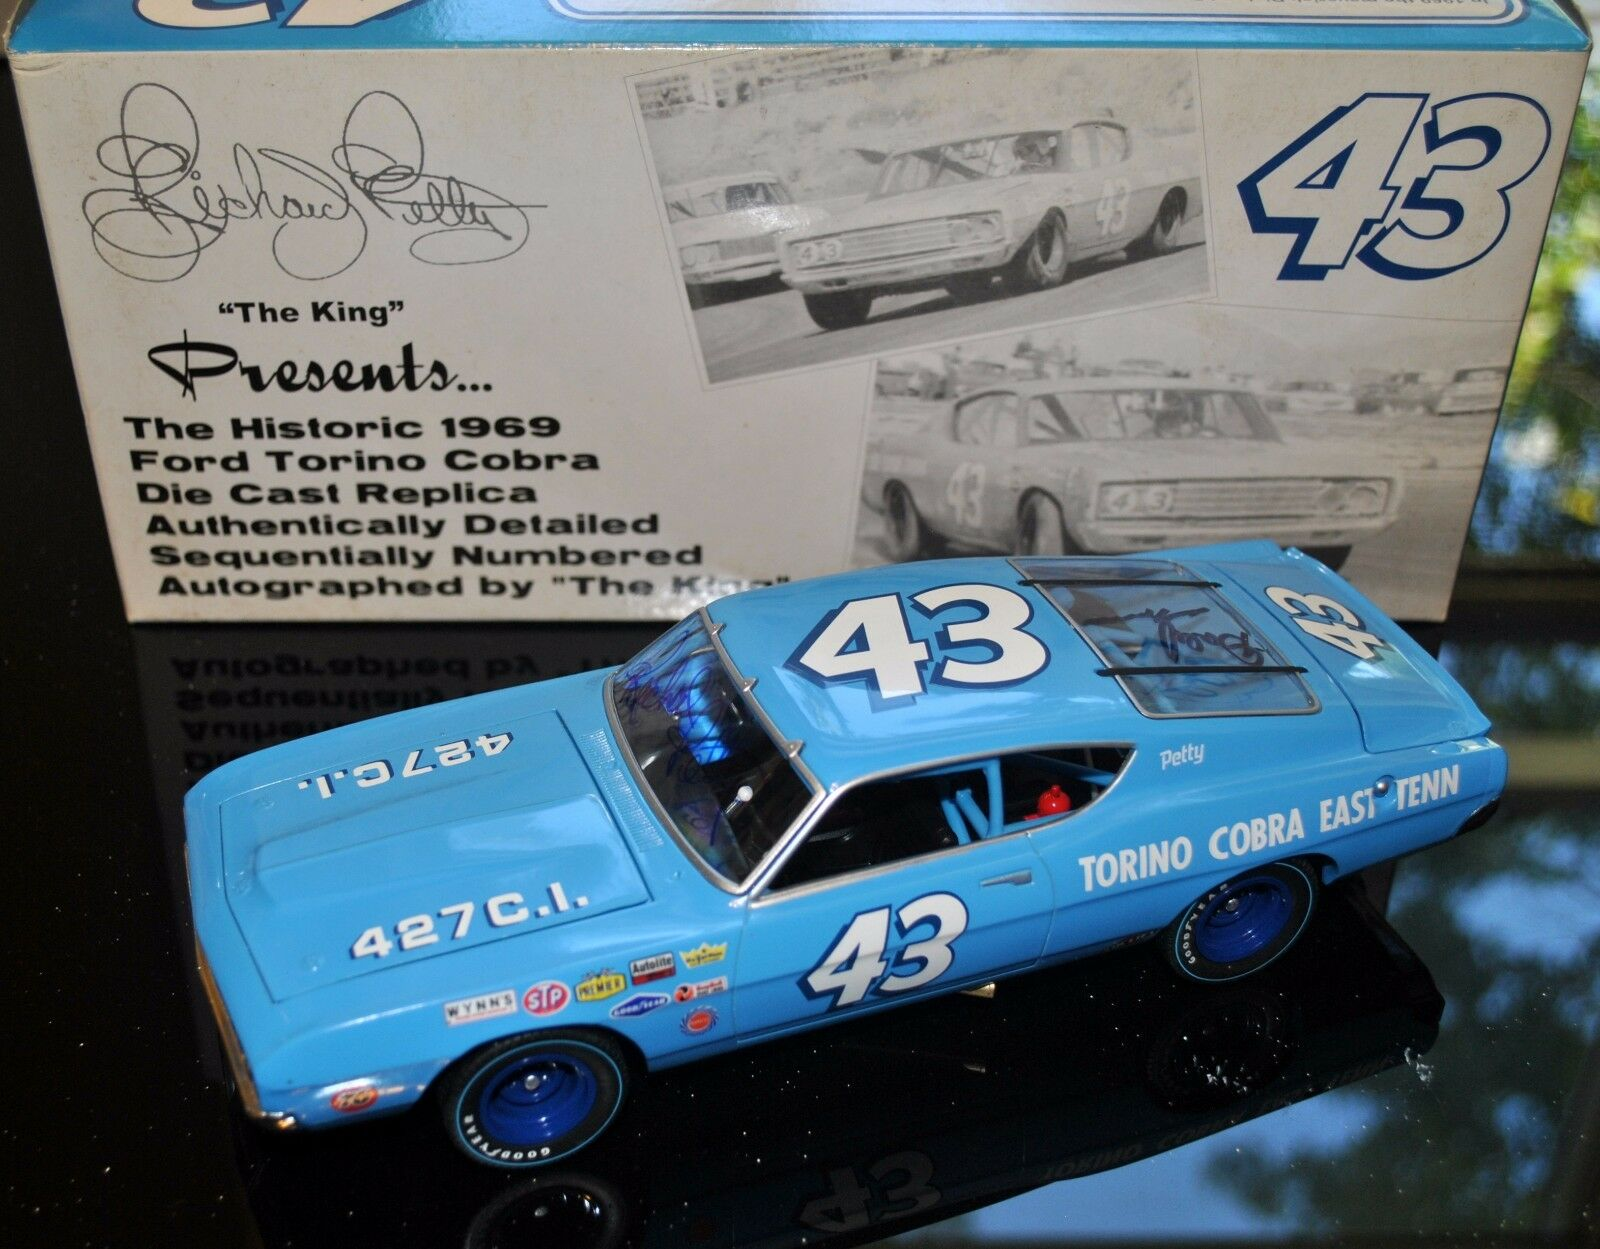 Richard Petty Dale Inman Signed Autographed 1 24 Die Cast NASCAR 1969 Torino